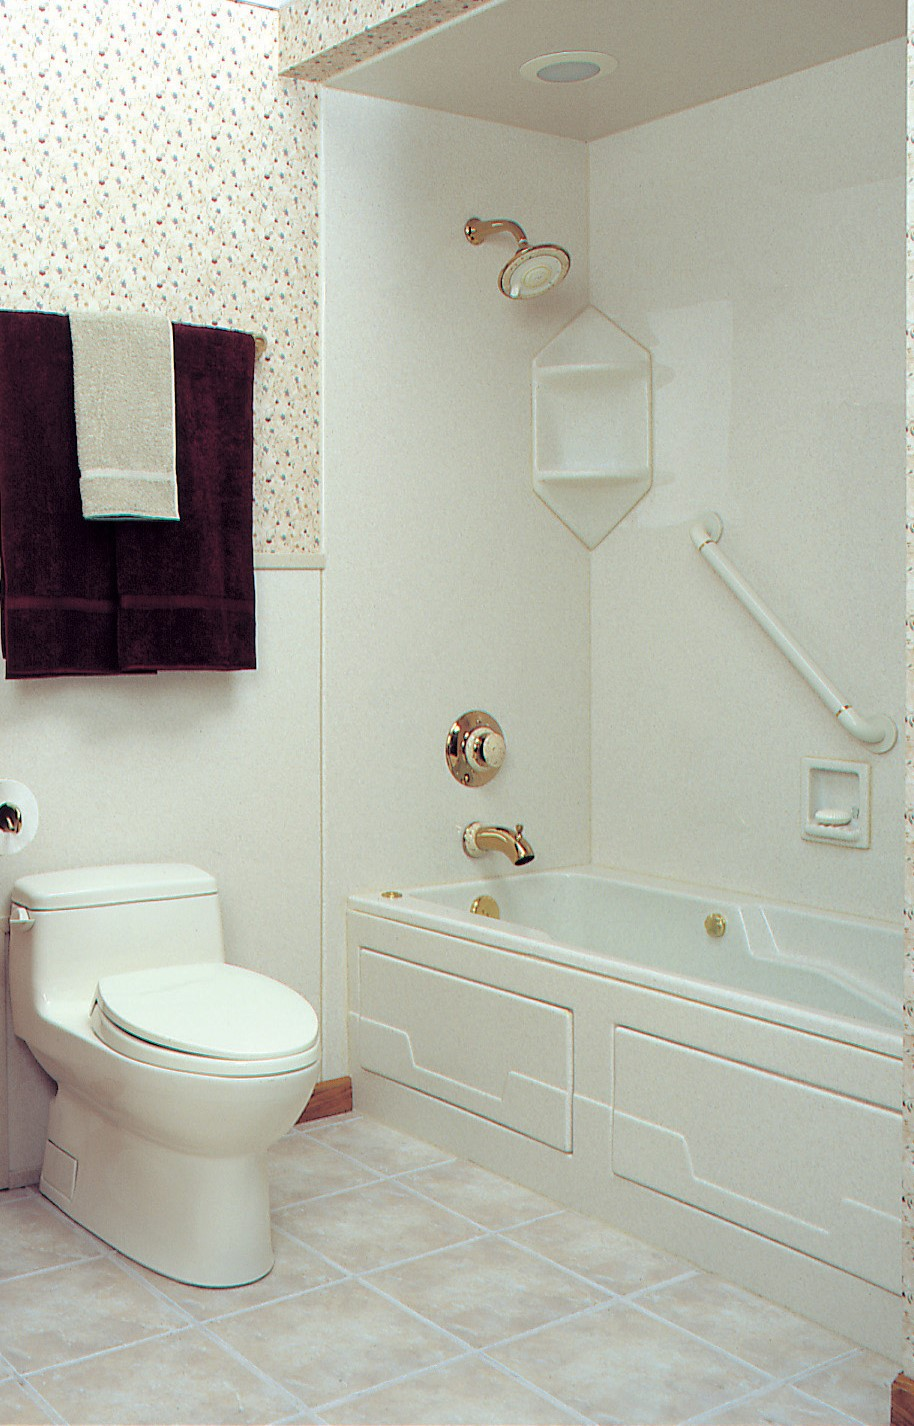 one day bath gallery click image to view more - One Day Bathroom Remodeling